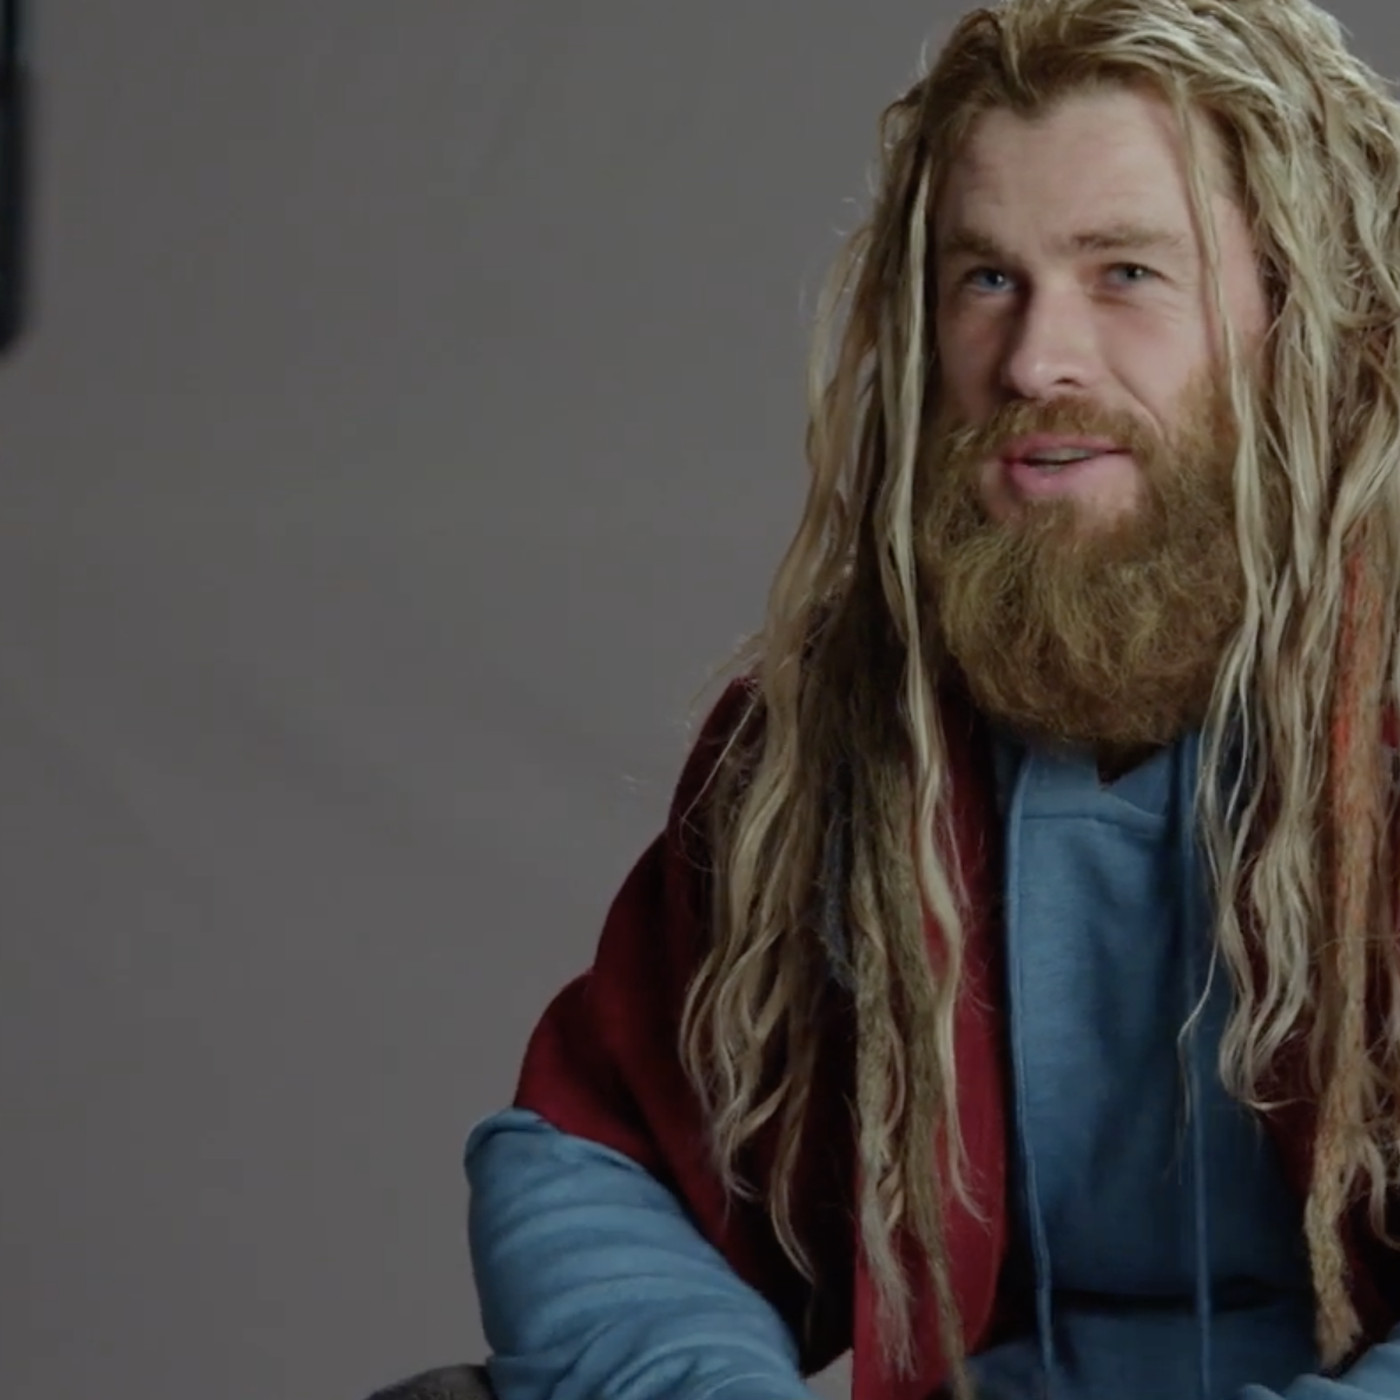 Behind The Scenes Avengers Endgame Footage Shows Thor S